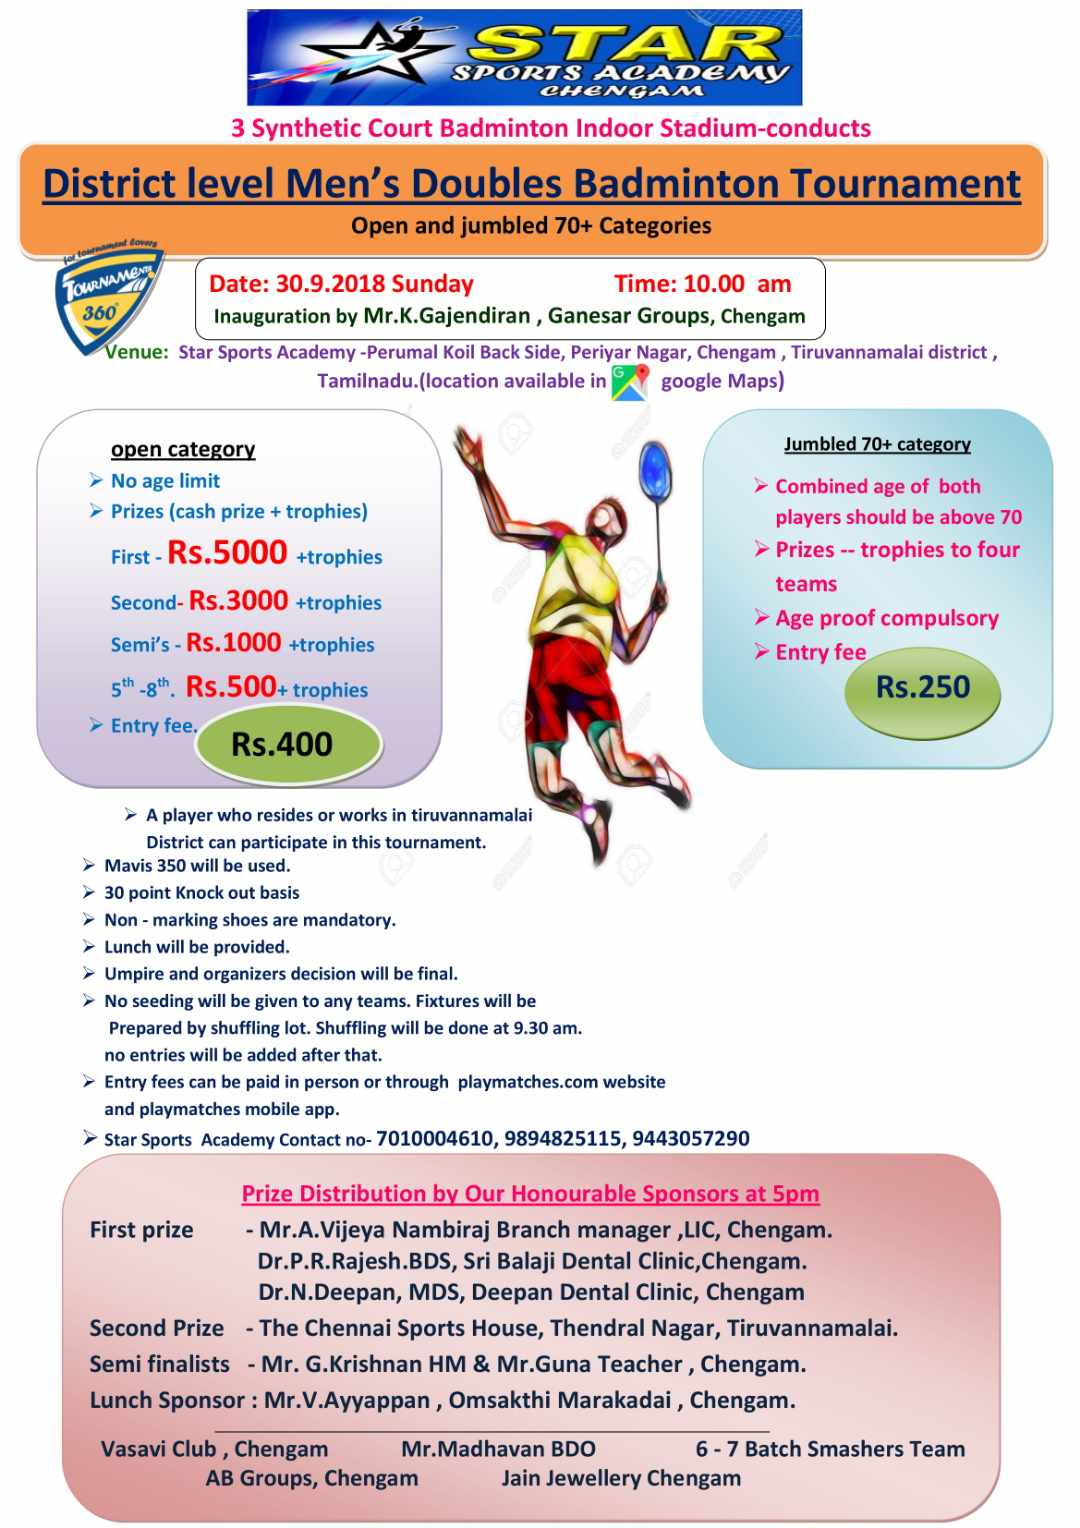 Men's Doubles Badminton Tournament